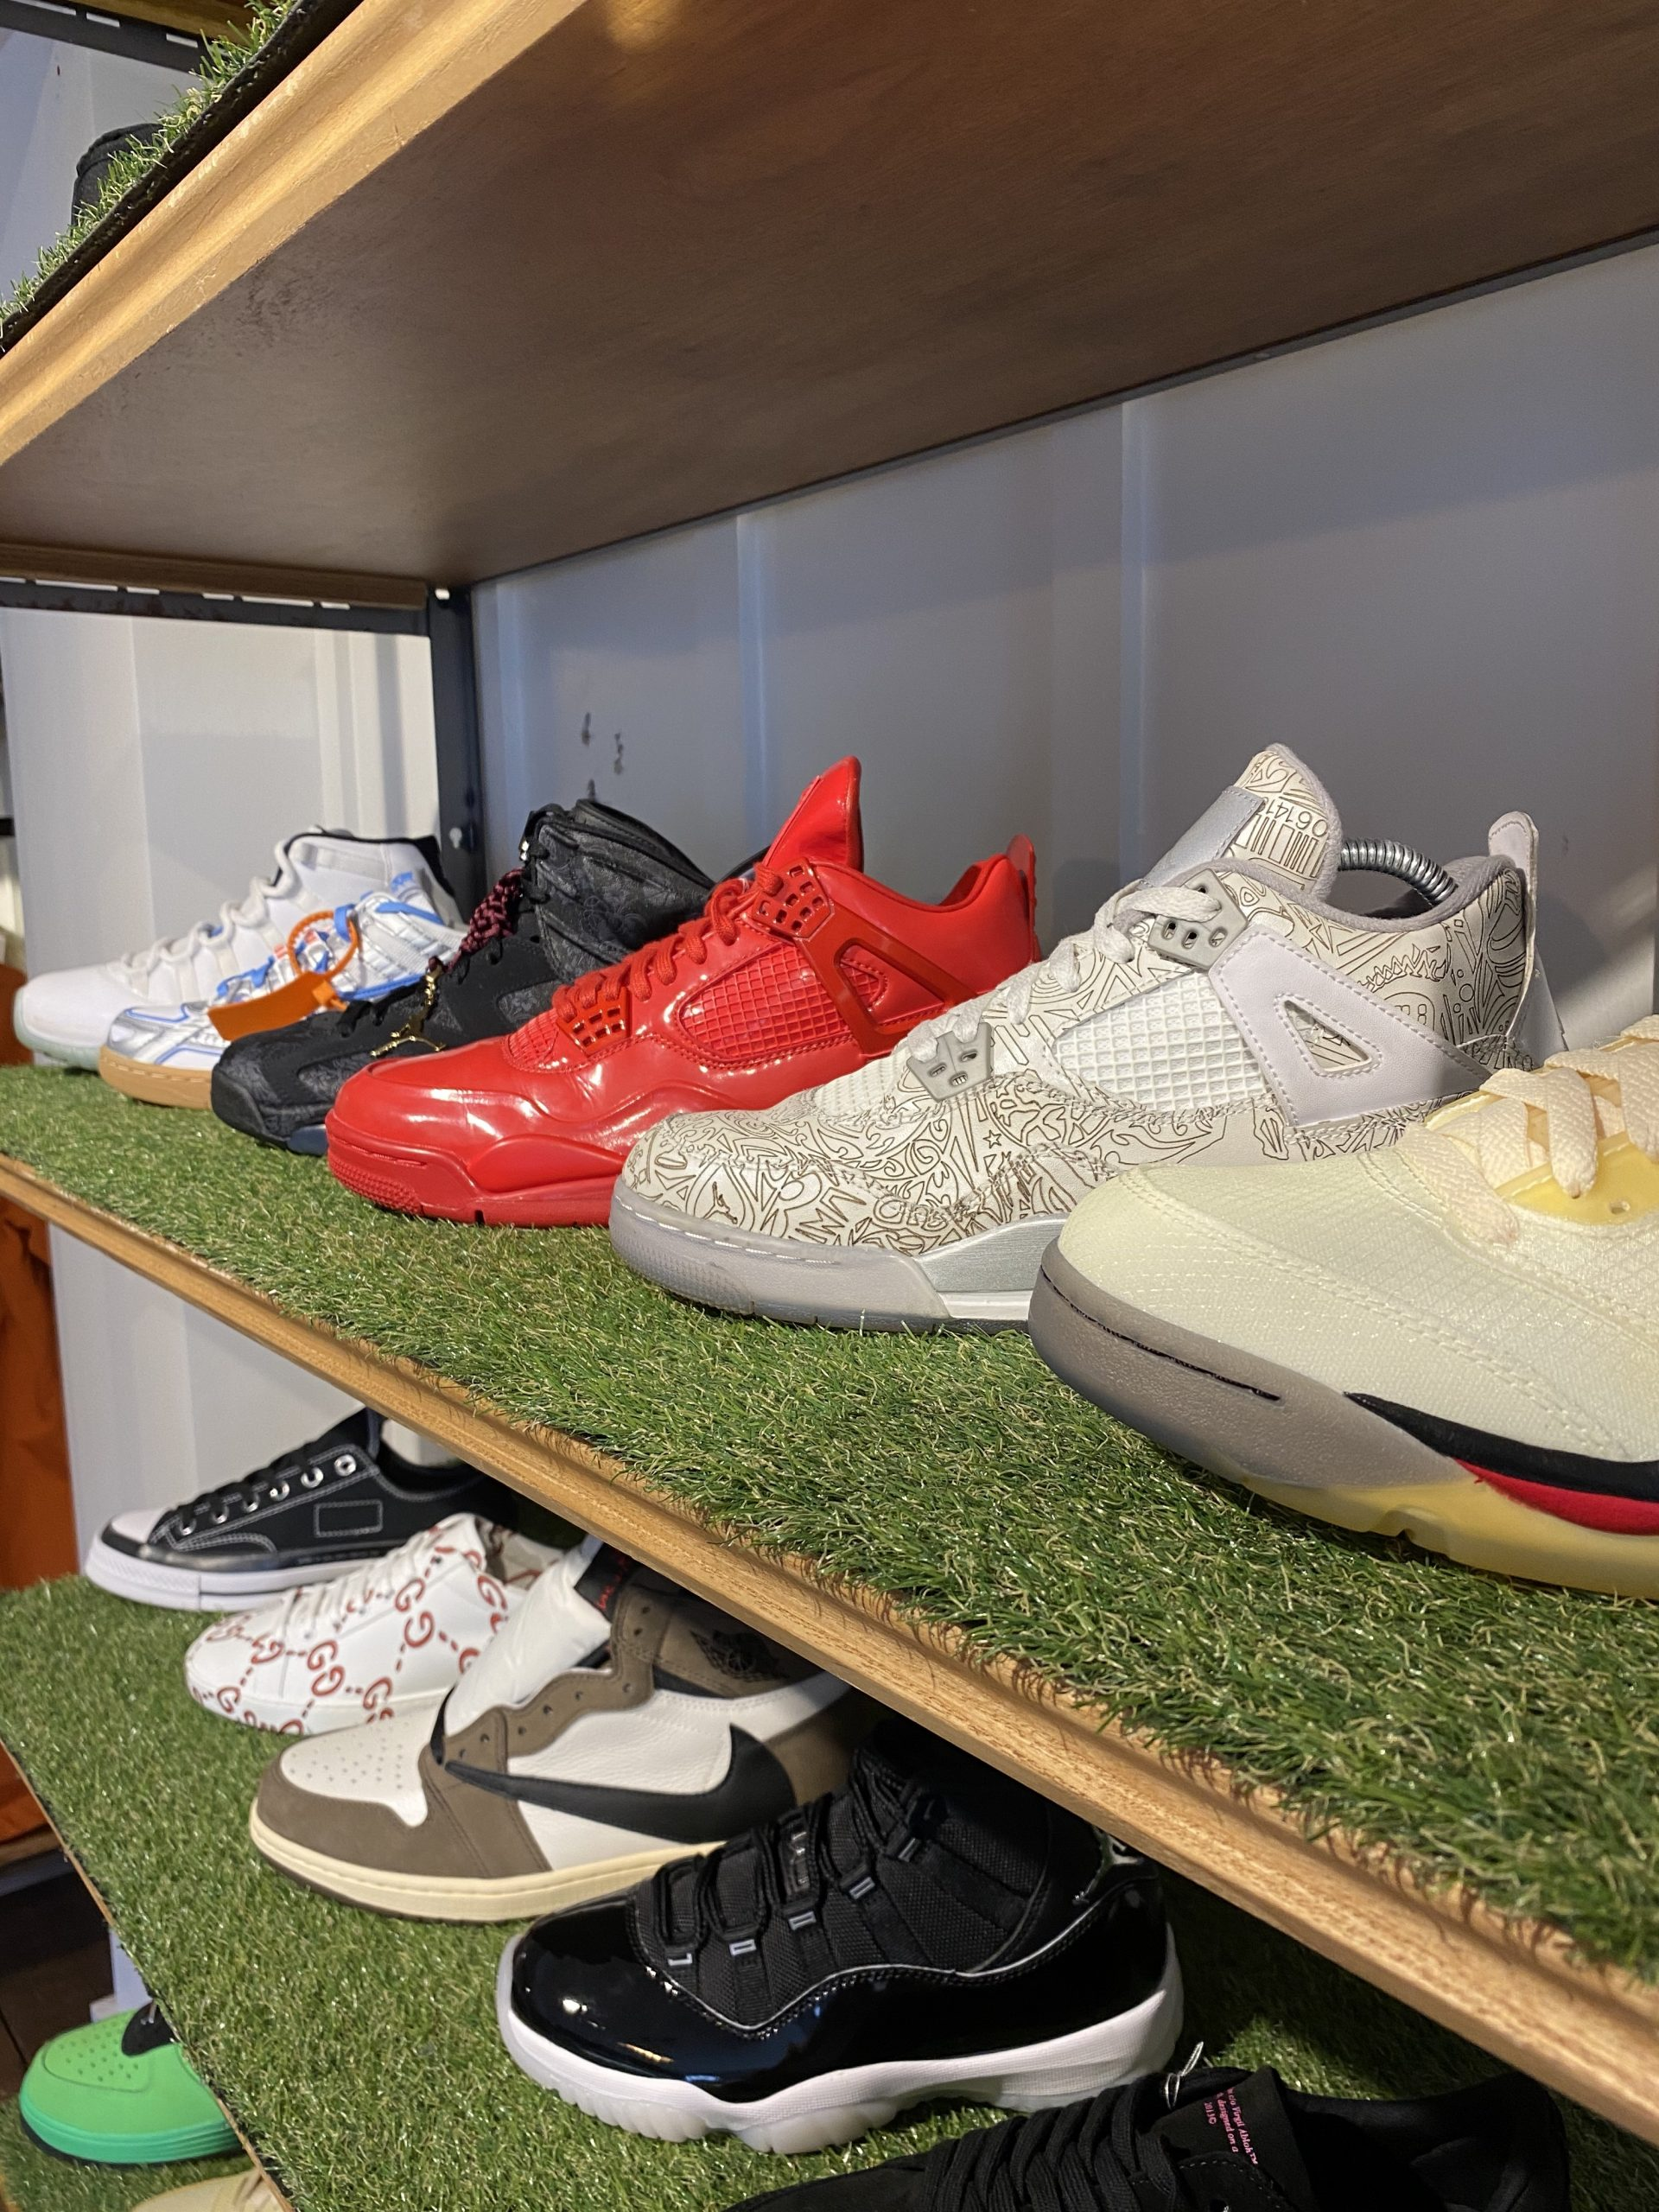 Trainers stocked at 1NE.Derby